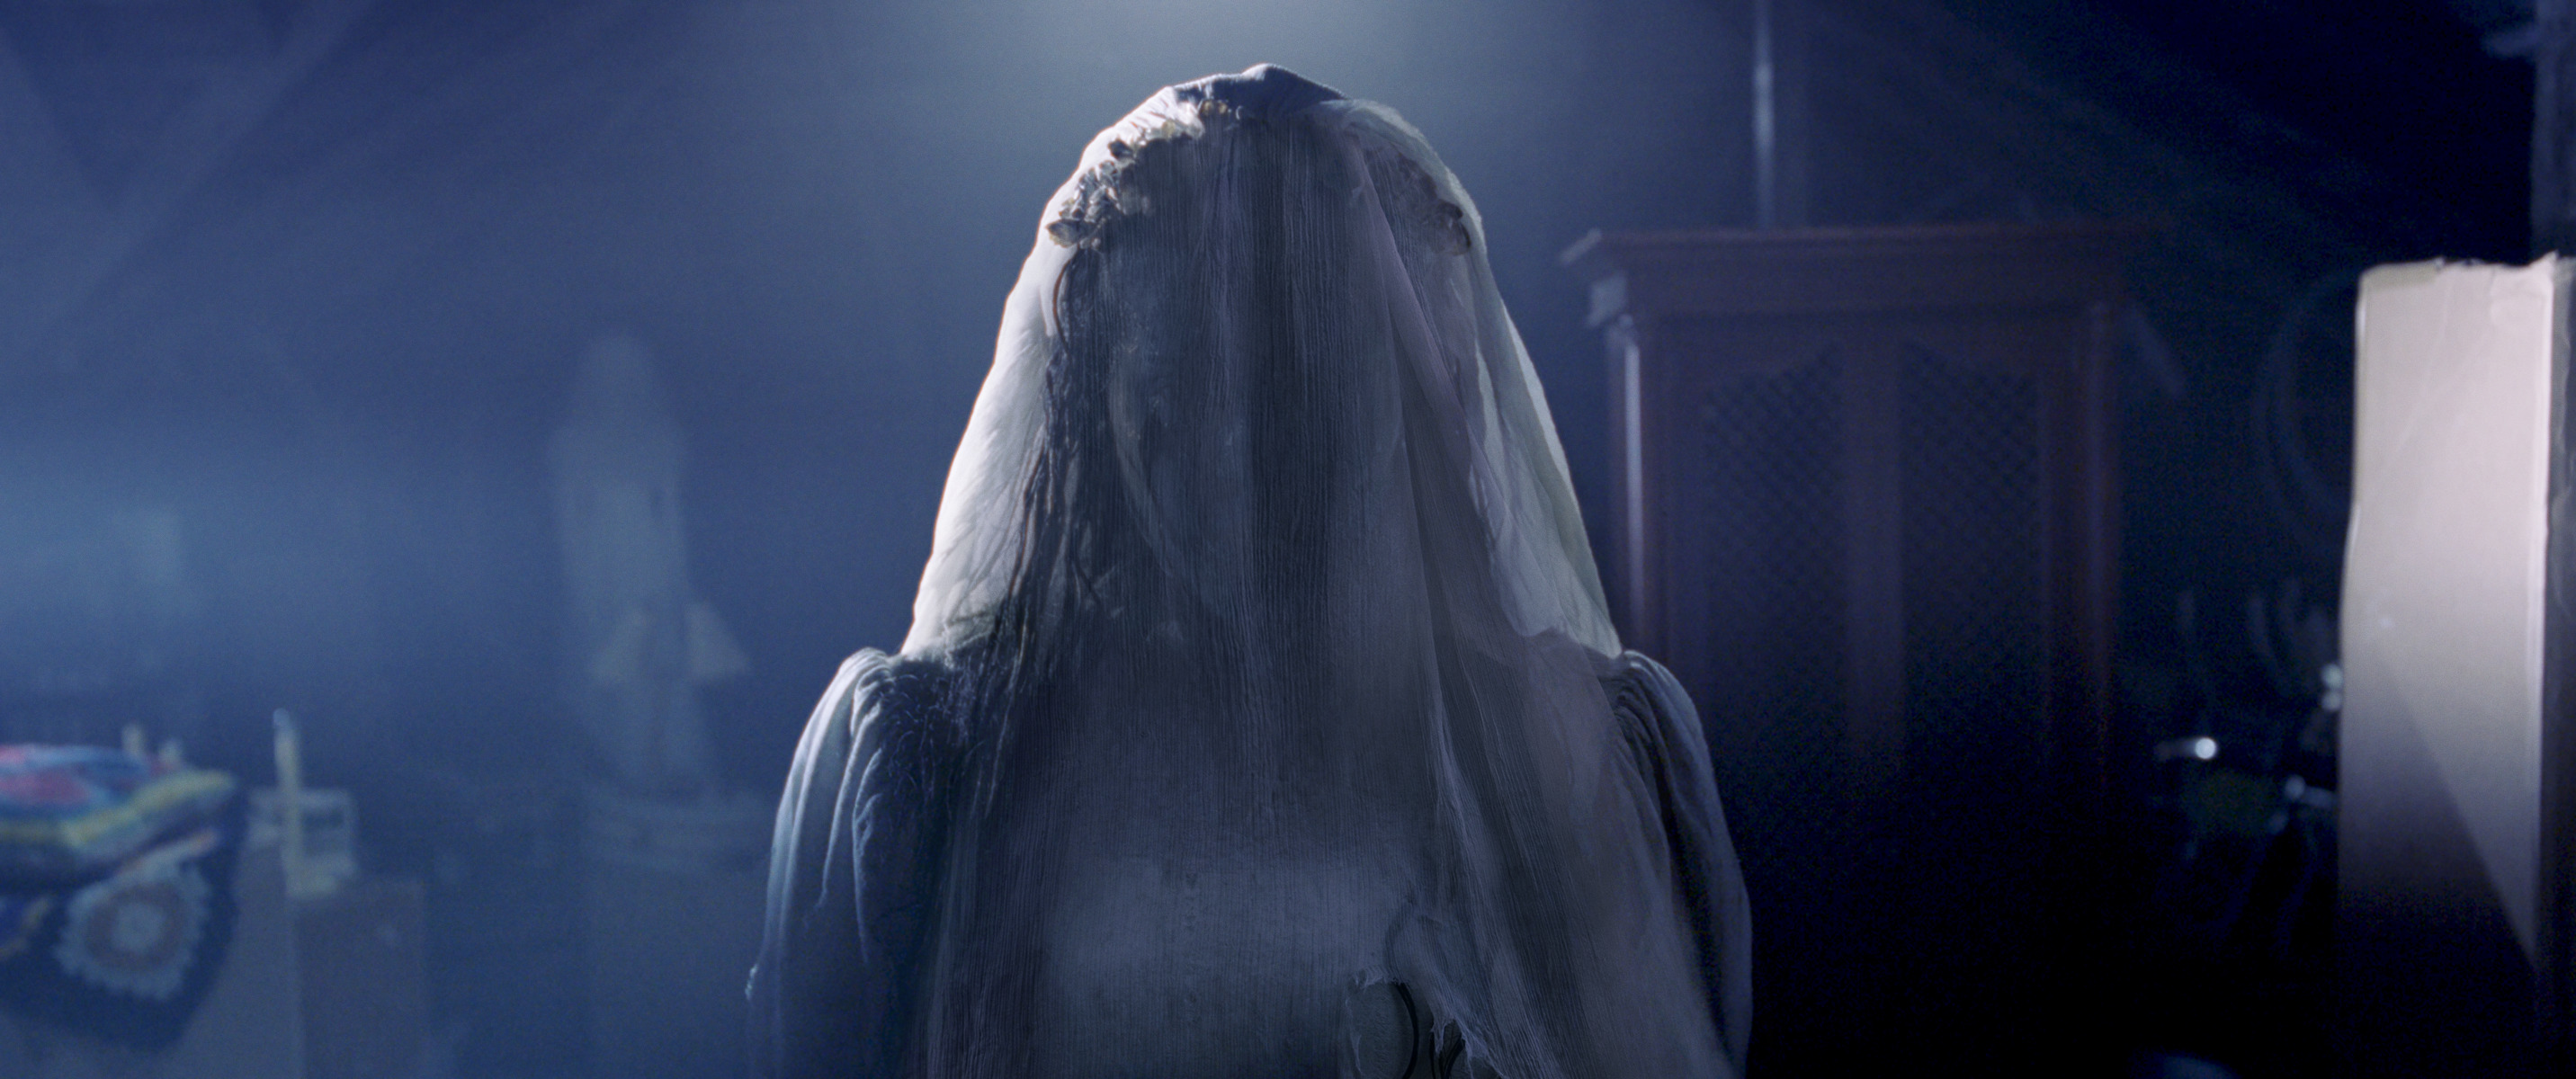 SXSW Interview: Cast of THE CURSE OF LA LLORONA